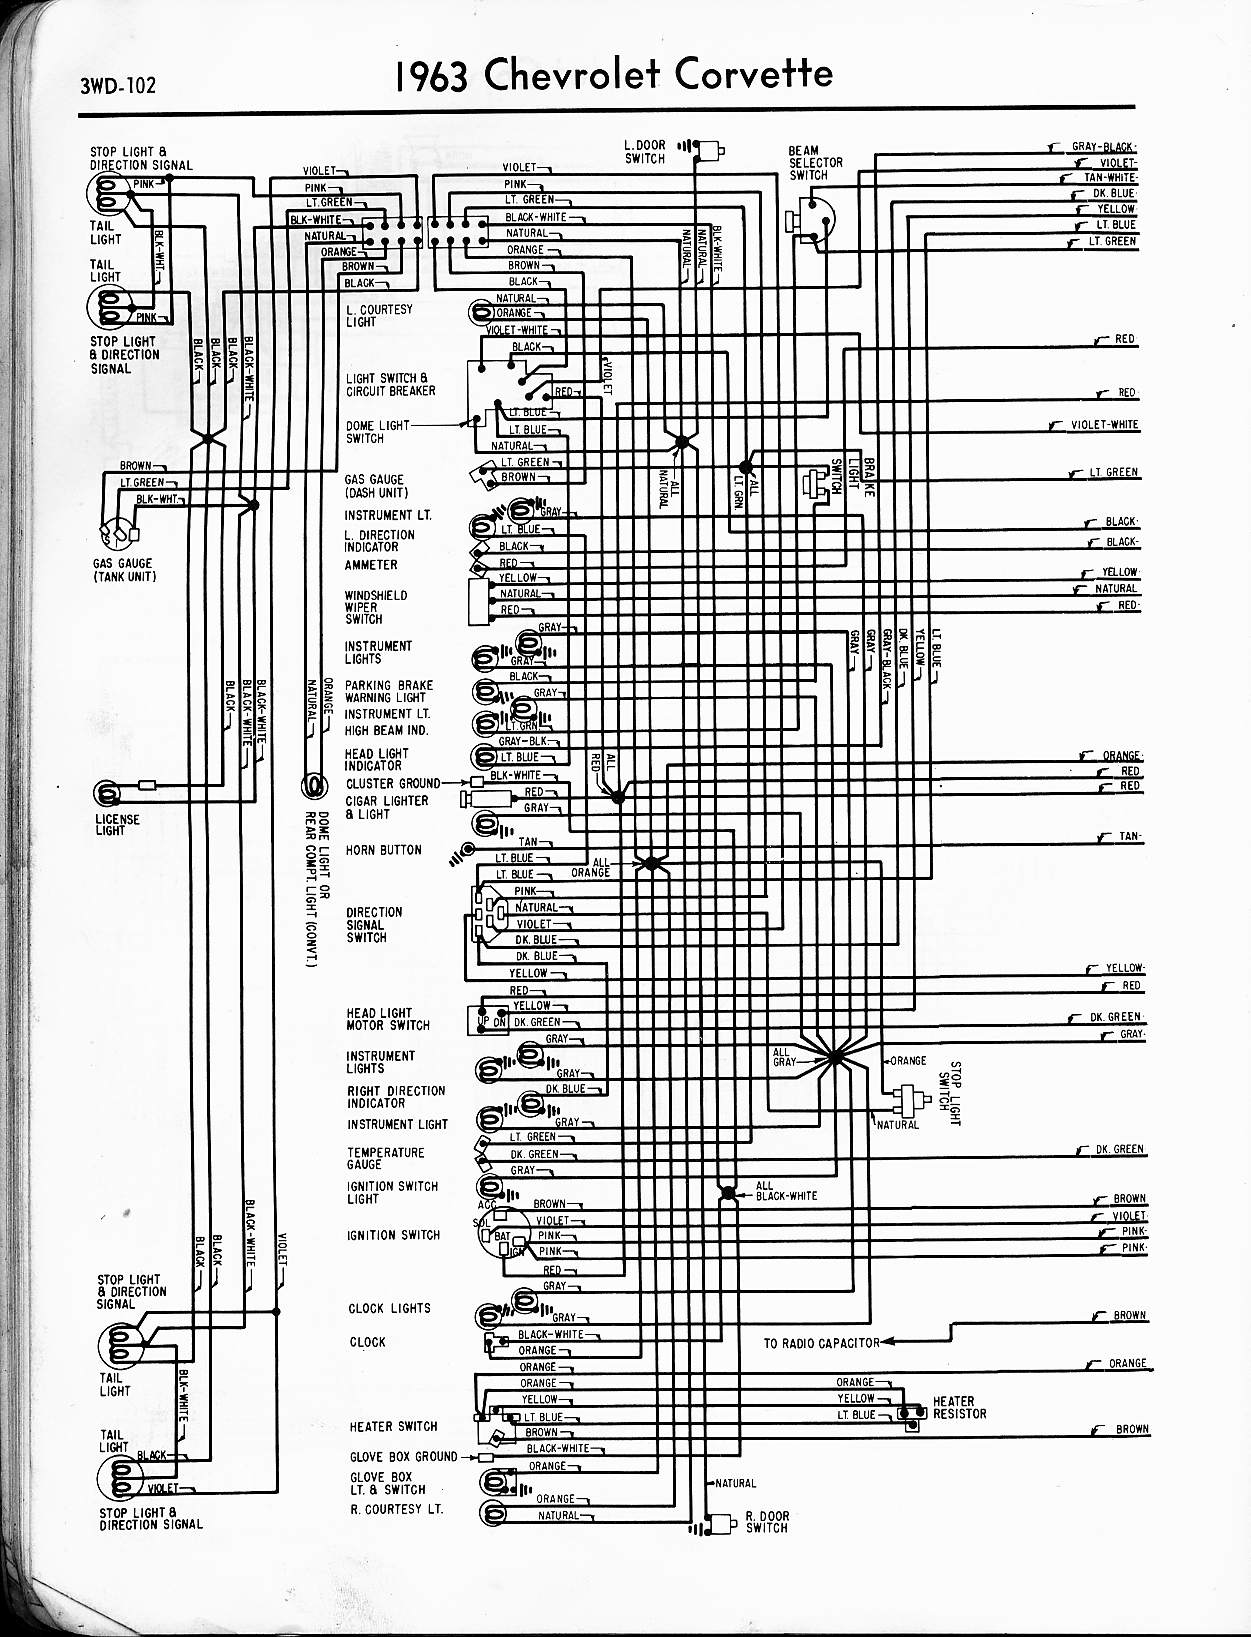 1965 Corvette Dash Wiring Diagram Just Wiring Data Ignition Switch Wiring  1964 Corvette Fuse Box Wiring